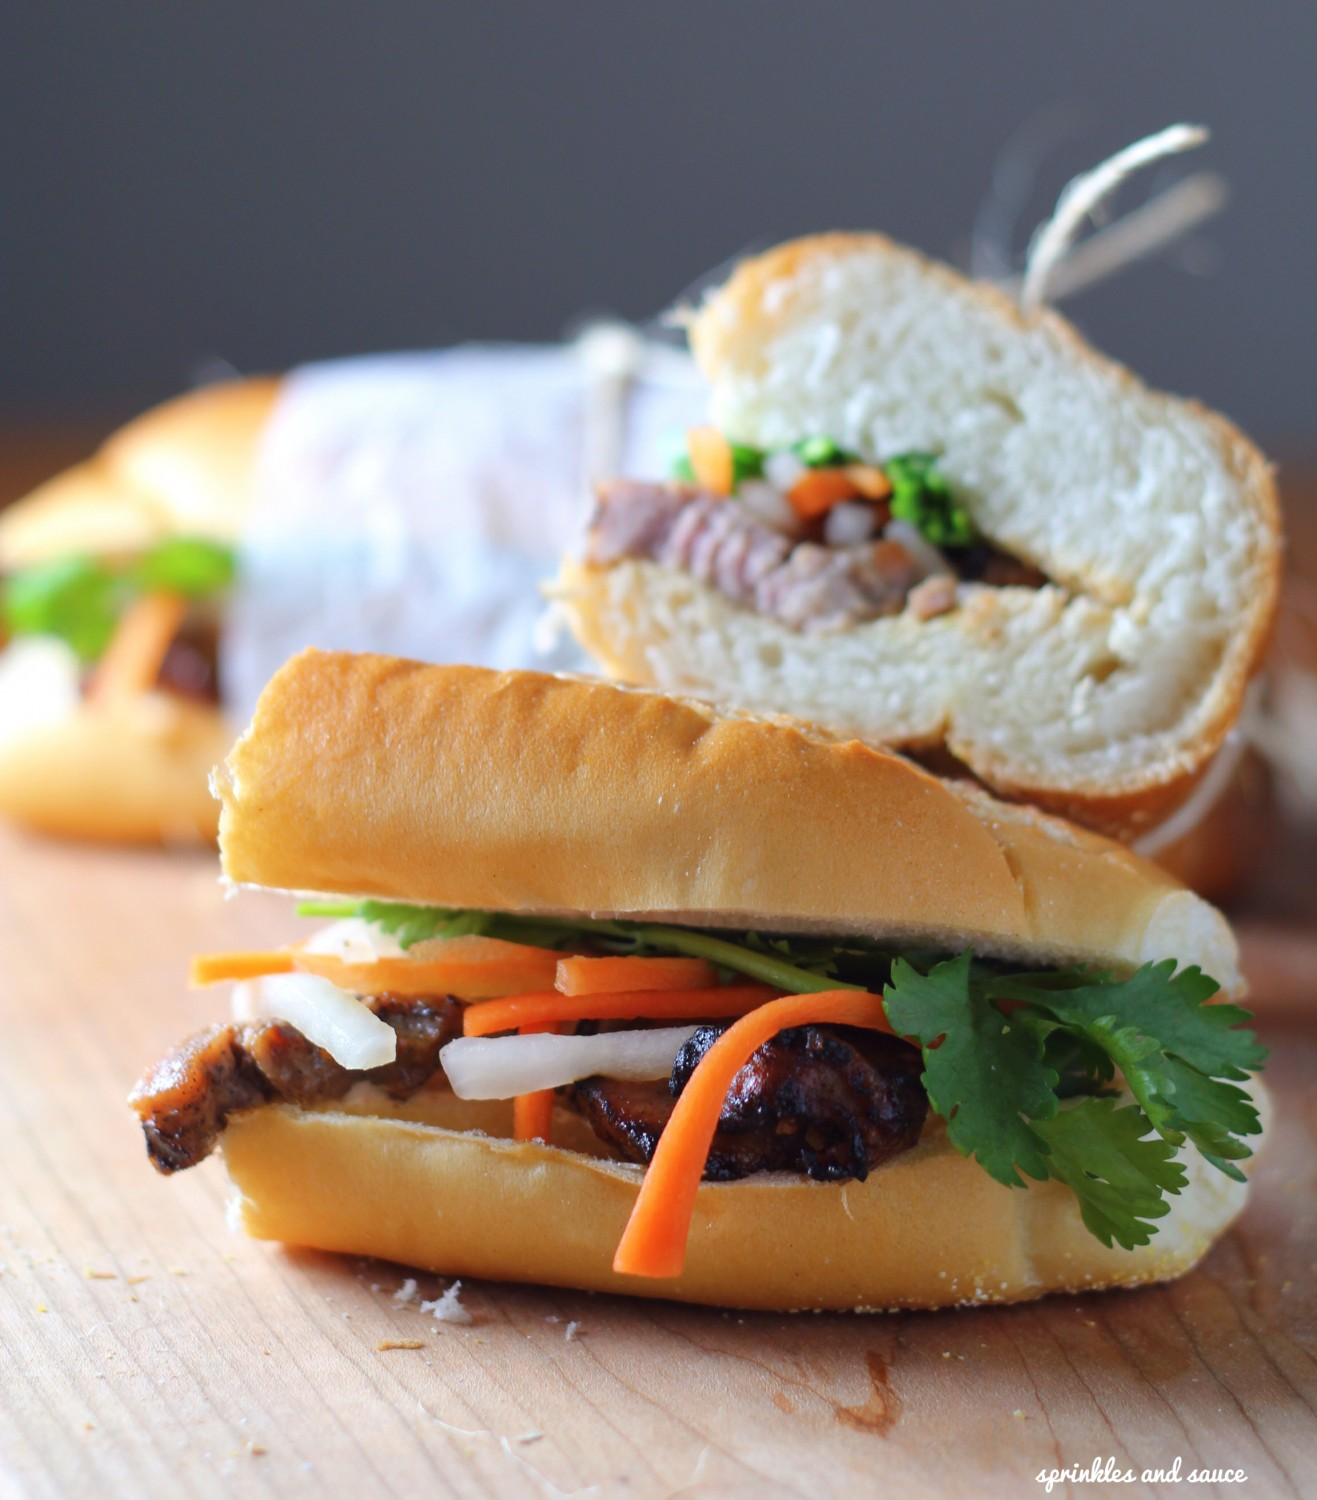 Lemongrass Pork Banh Mi2